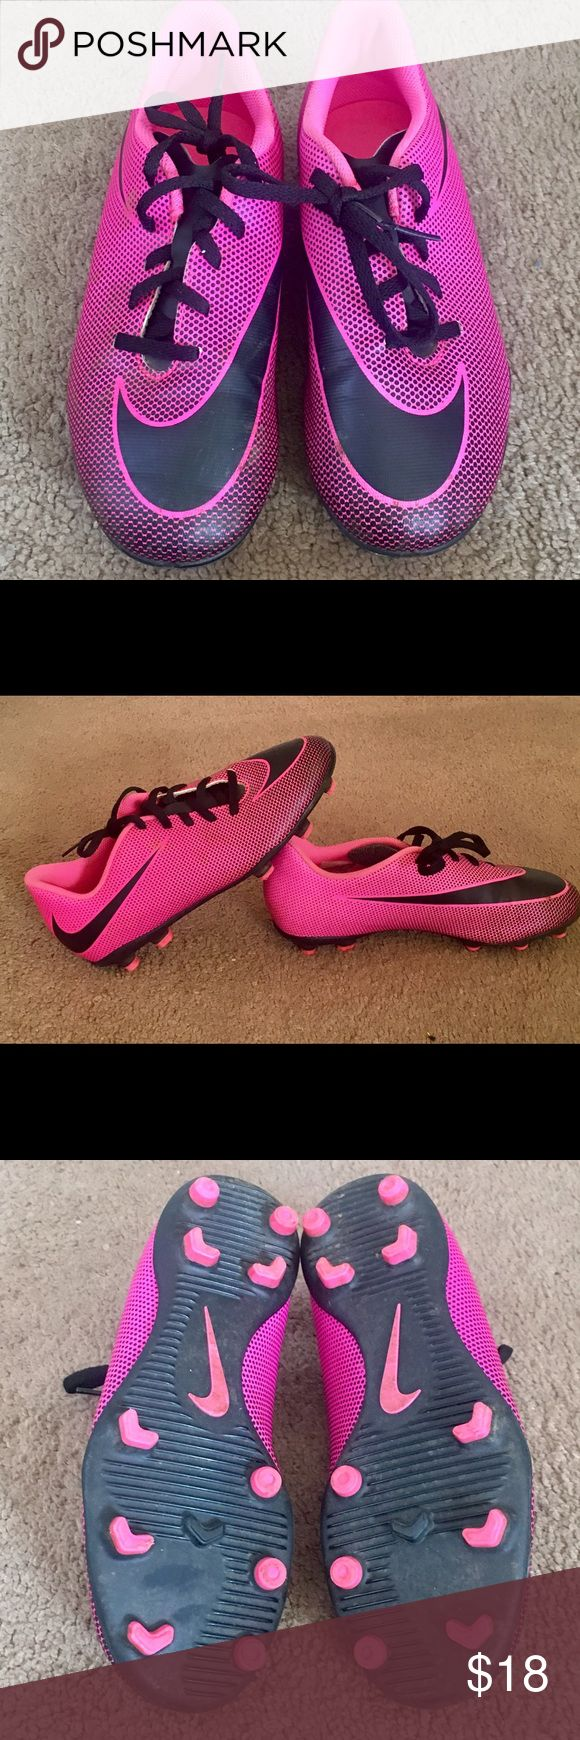 Nike sz 5.5 Girls Soccer Cleats- mint Mint condition girls soccer cleats worn 1 time. I purchased for my daughter for the last game of the Fall season and her foot has grown and now they do not fit . They cost me $45 plus tax in Dicks. Great deal for anyo